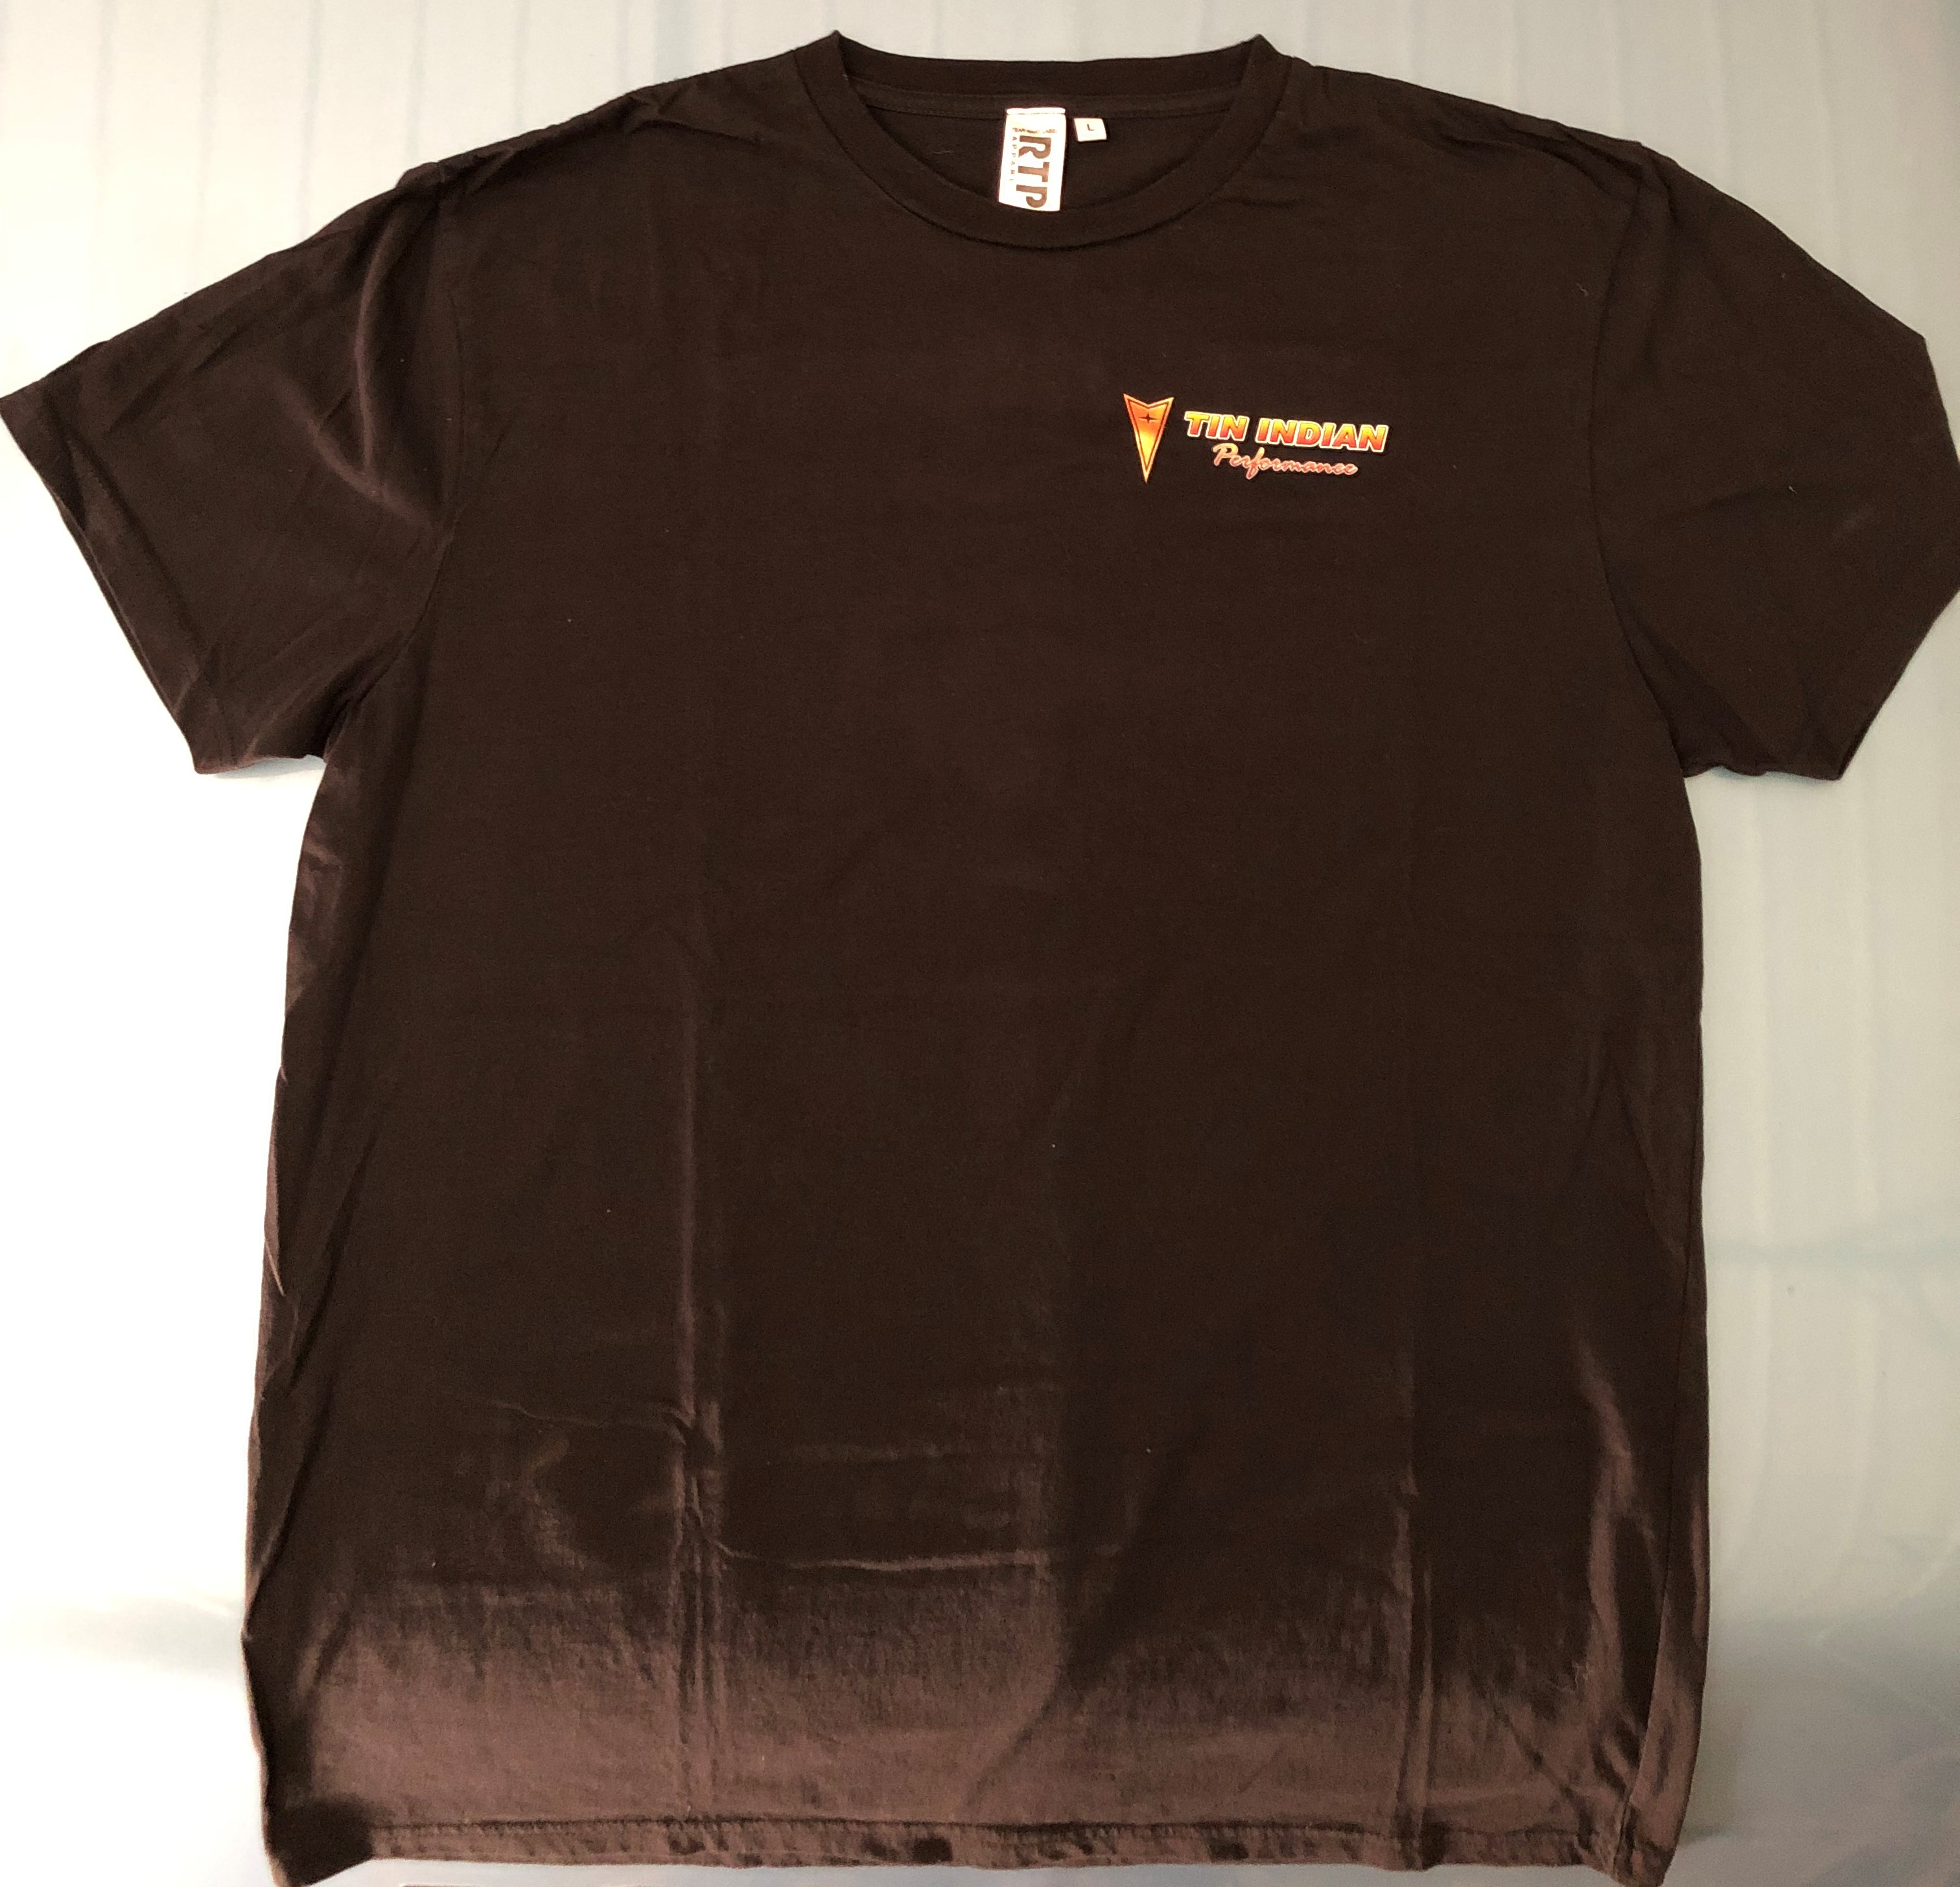 Tin Indian Performance Team Shirt front